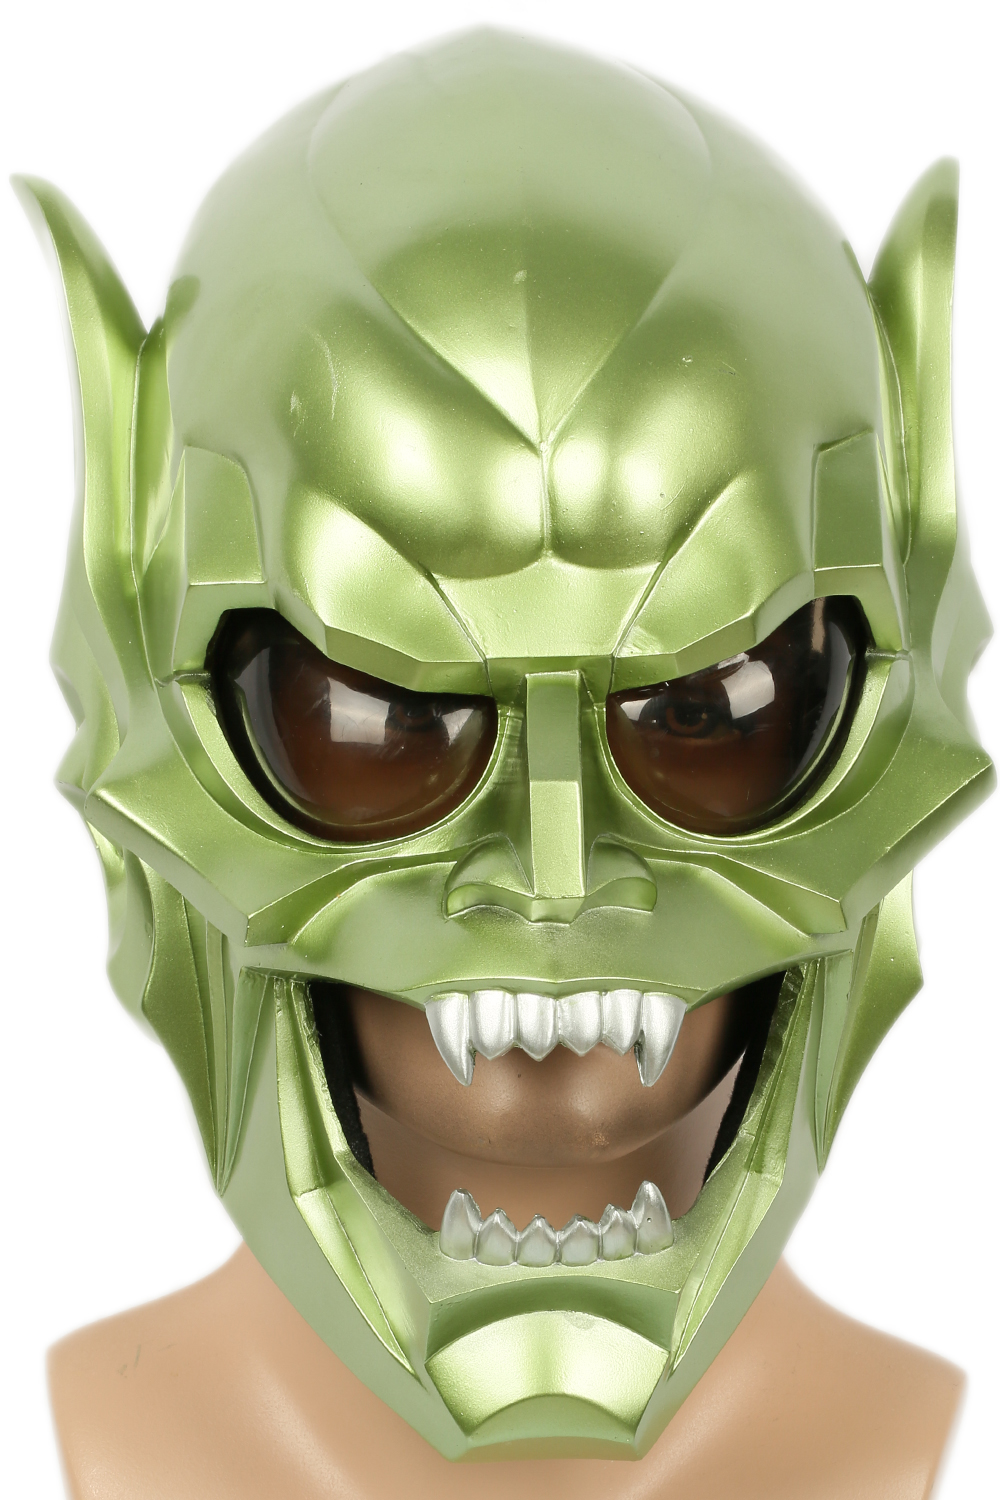 XCOSER Goblin Mask Costume Props for Adult Halloween Party Cosplay Accessories